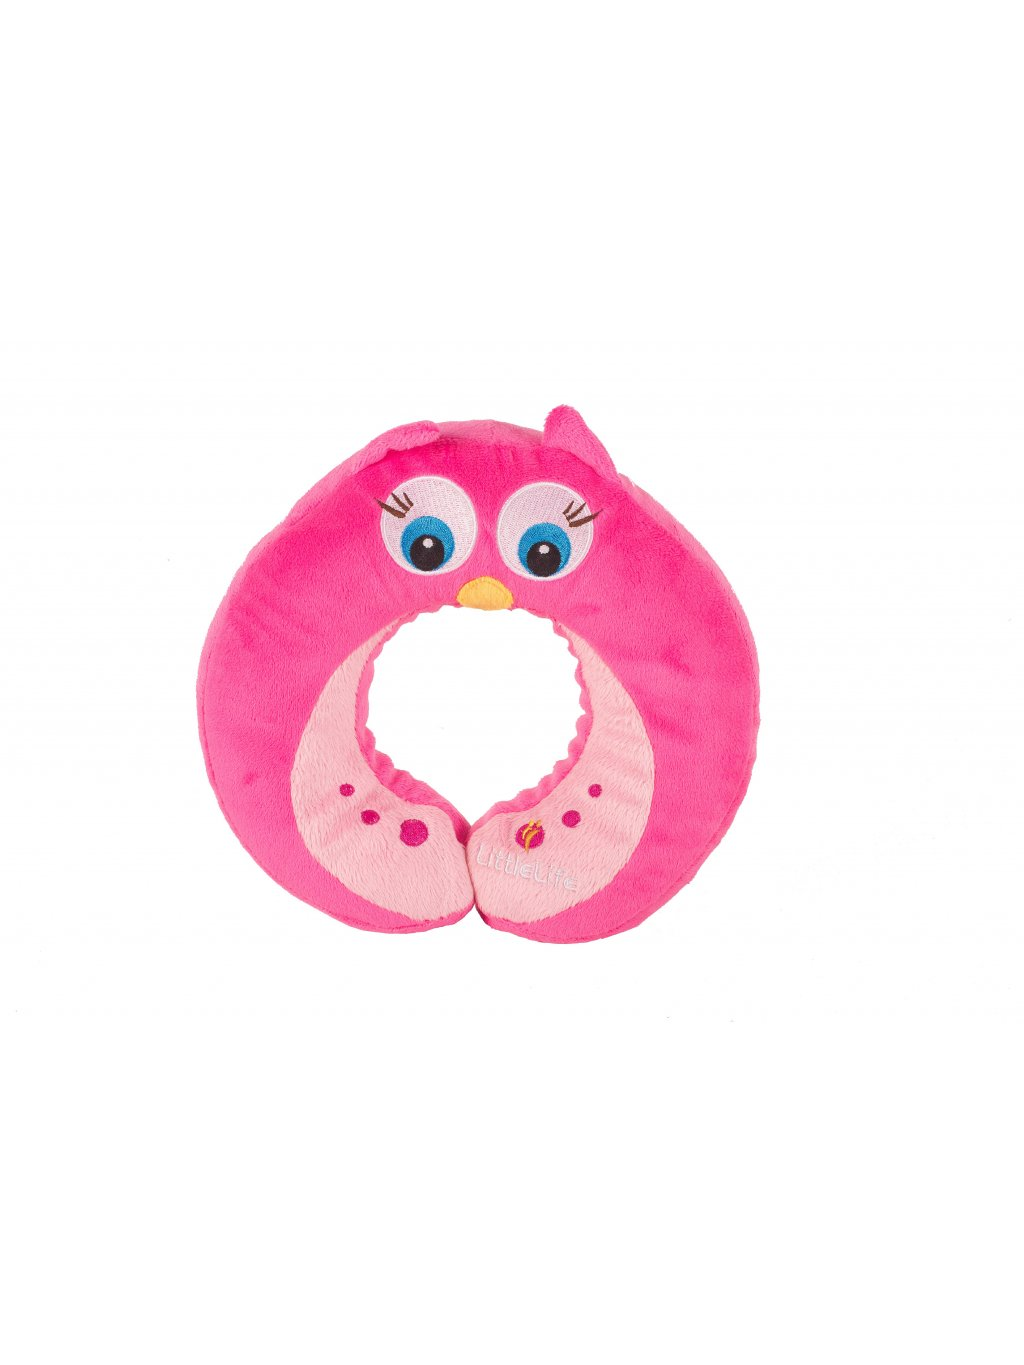 L12910 animal snooze pillow owl 1